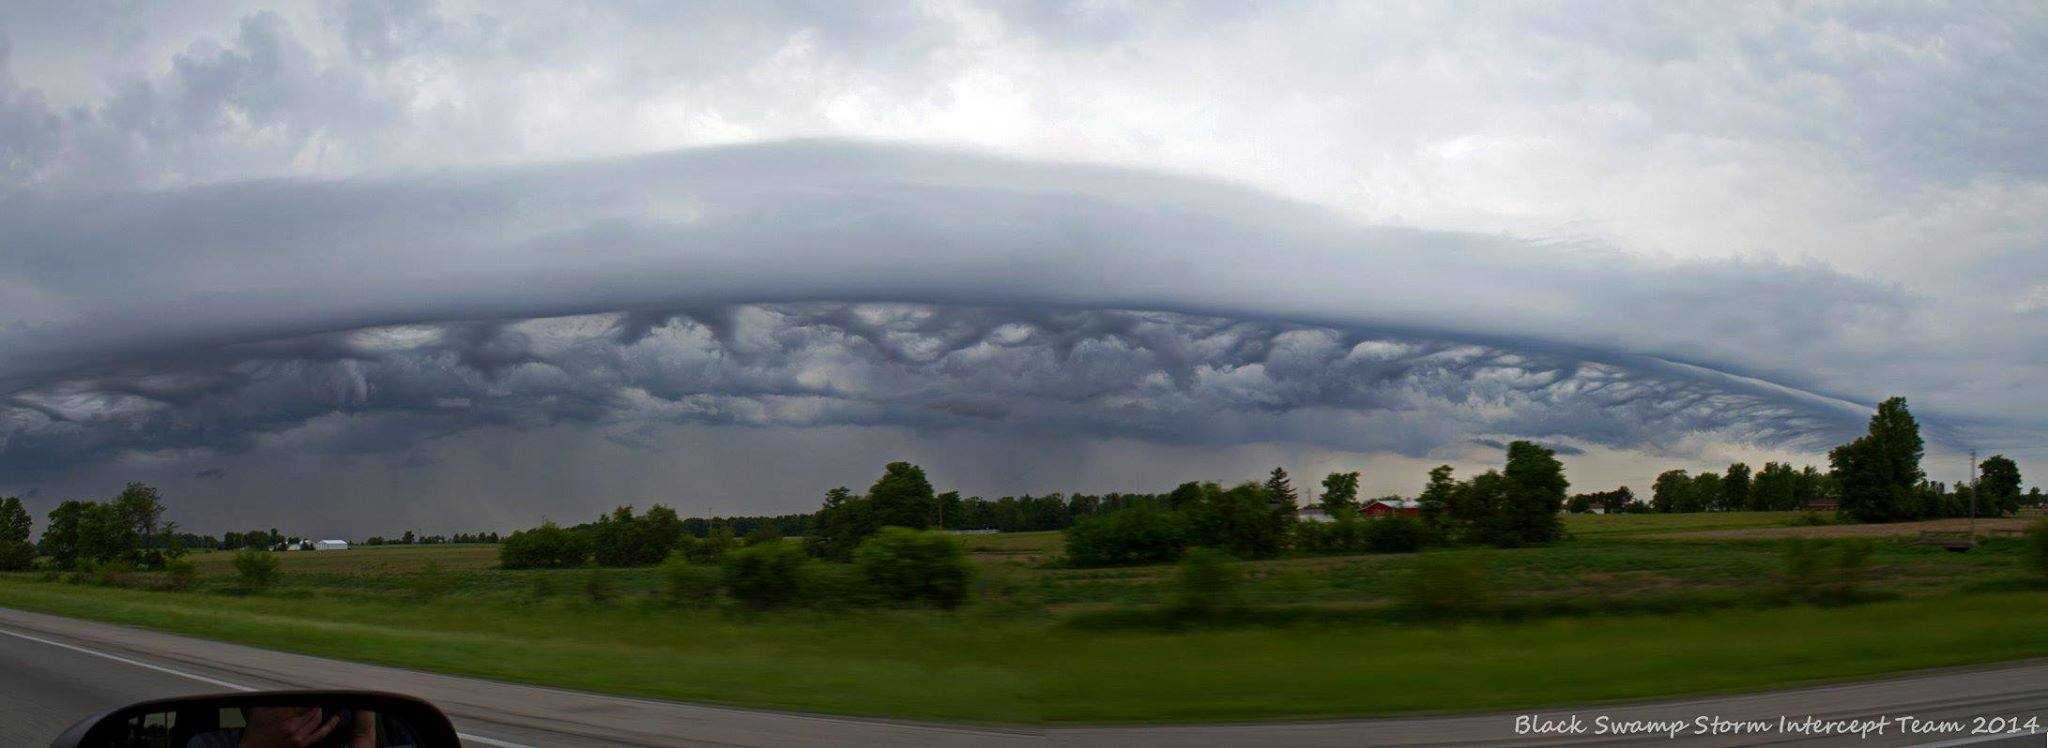 One of the most interesting shots from last year, odd cloud formations / shelf on the leading edge of a weak storm. East Ohio, June 2014.